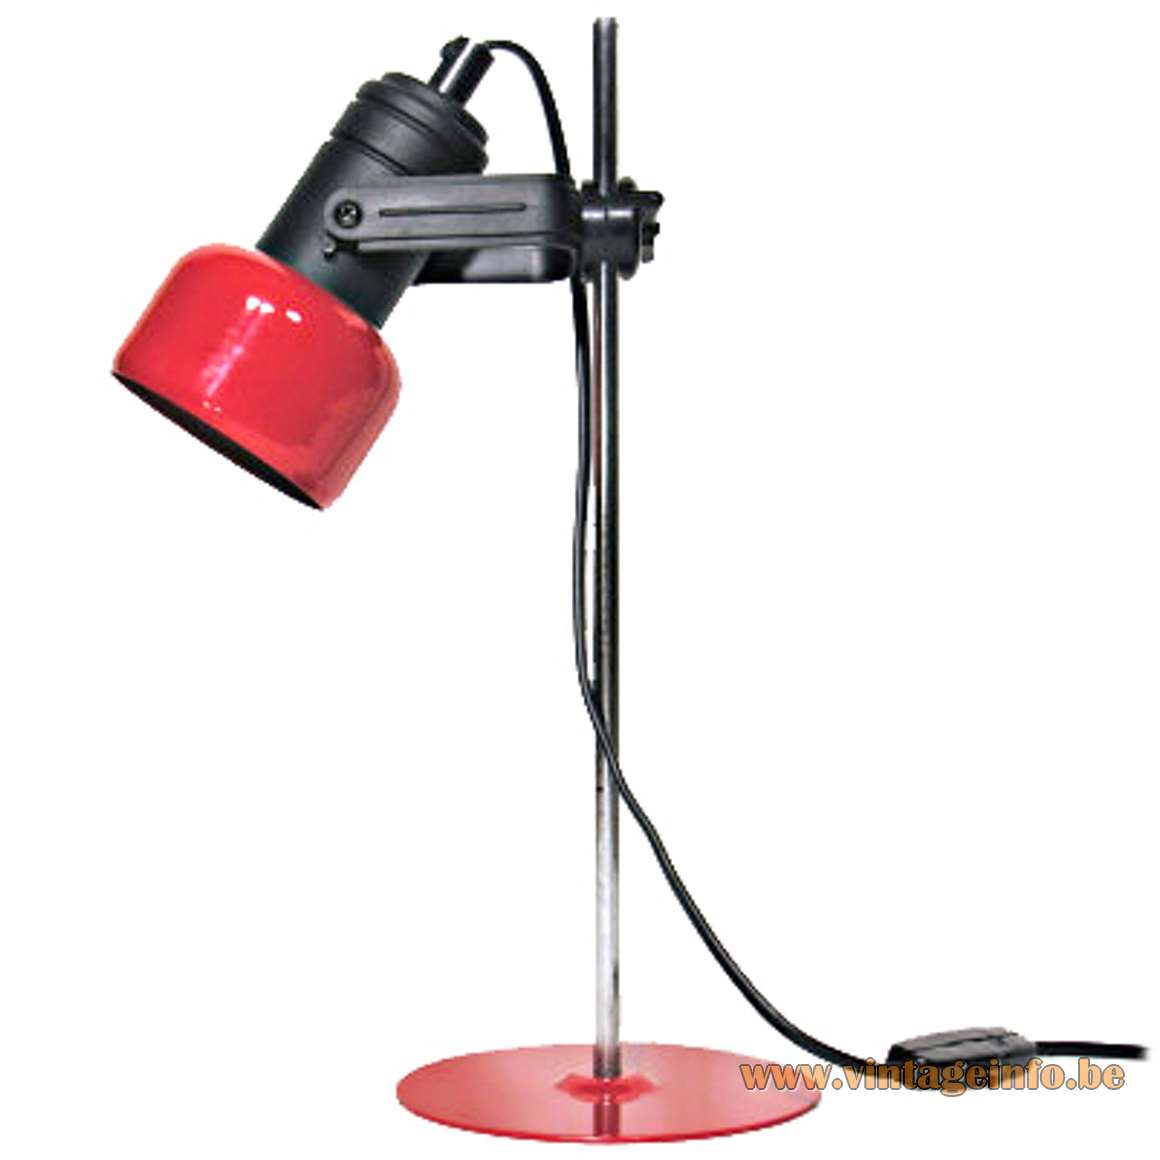 Vanilla Eyeball Desk Lamp - Neweba Red Desk Lamp